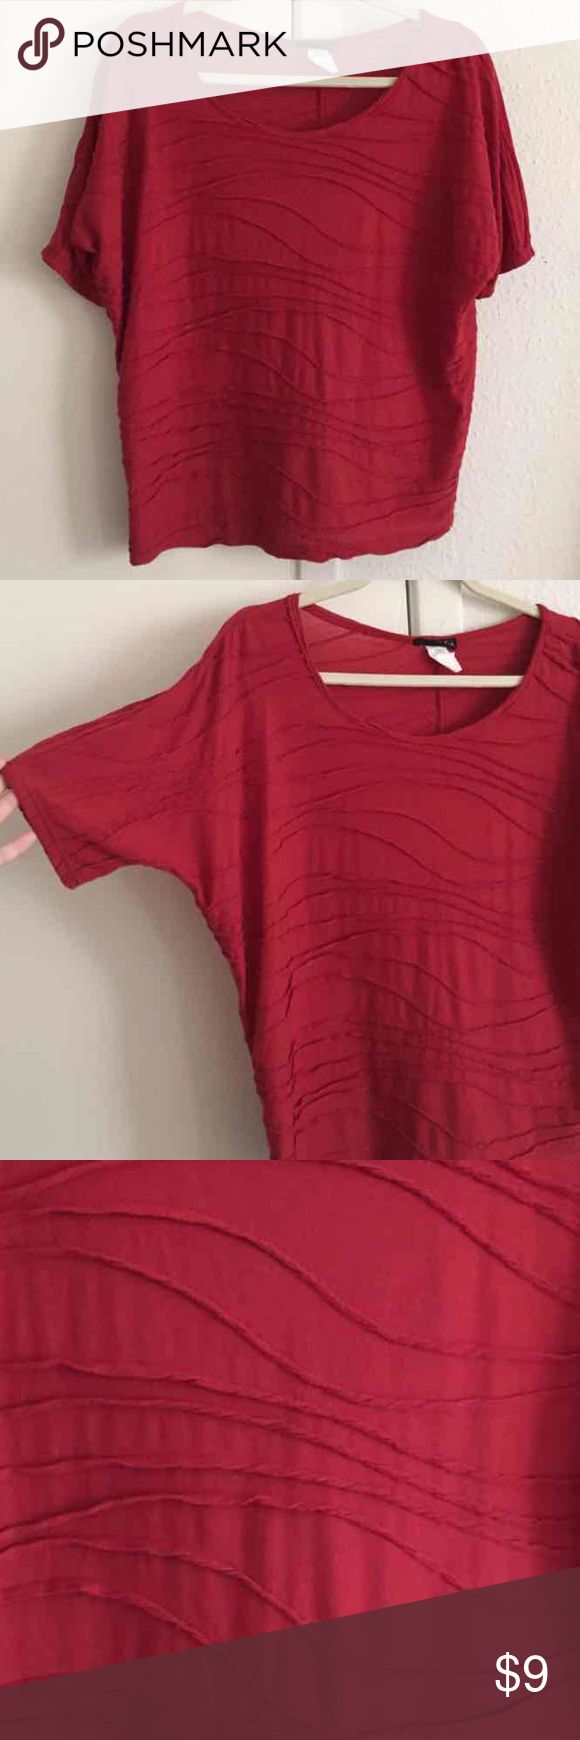 One Clothing Red batwing blouse top - size Small Worn once  Size: small  Color: Red one clothing Tops Blouses